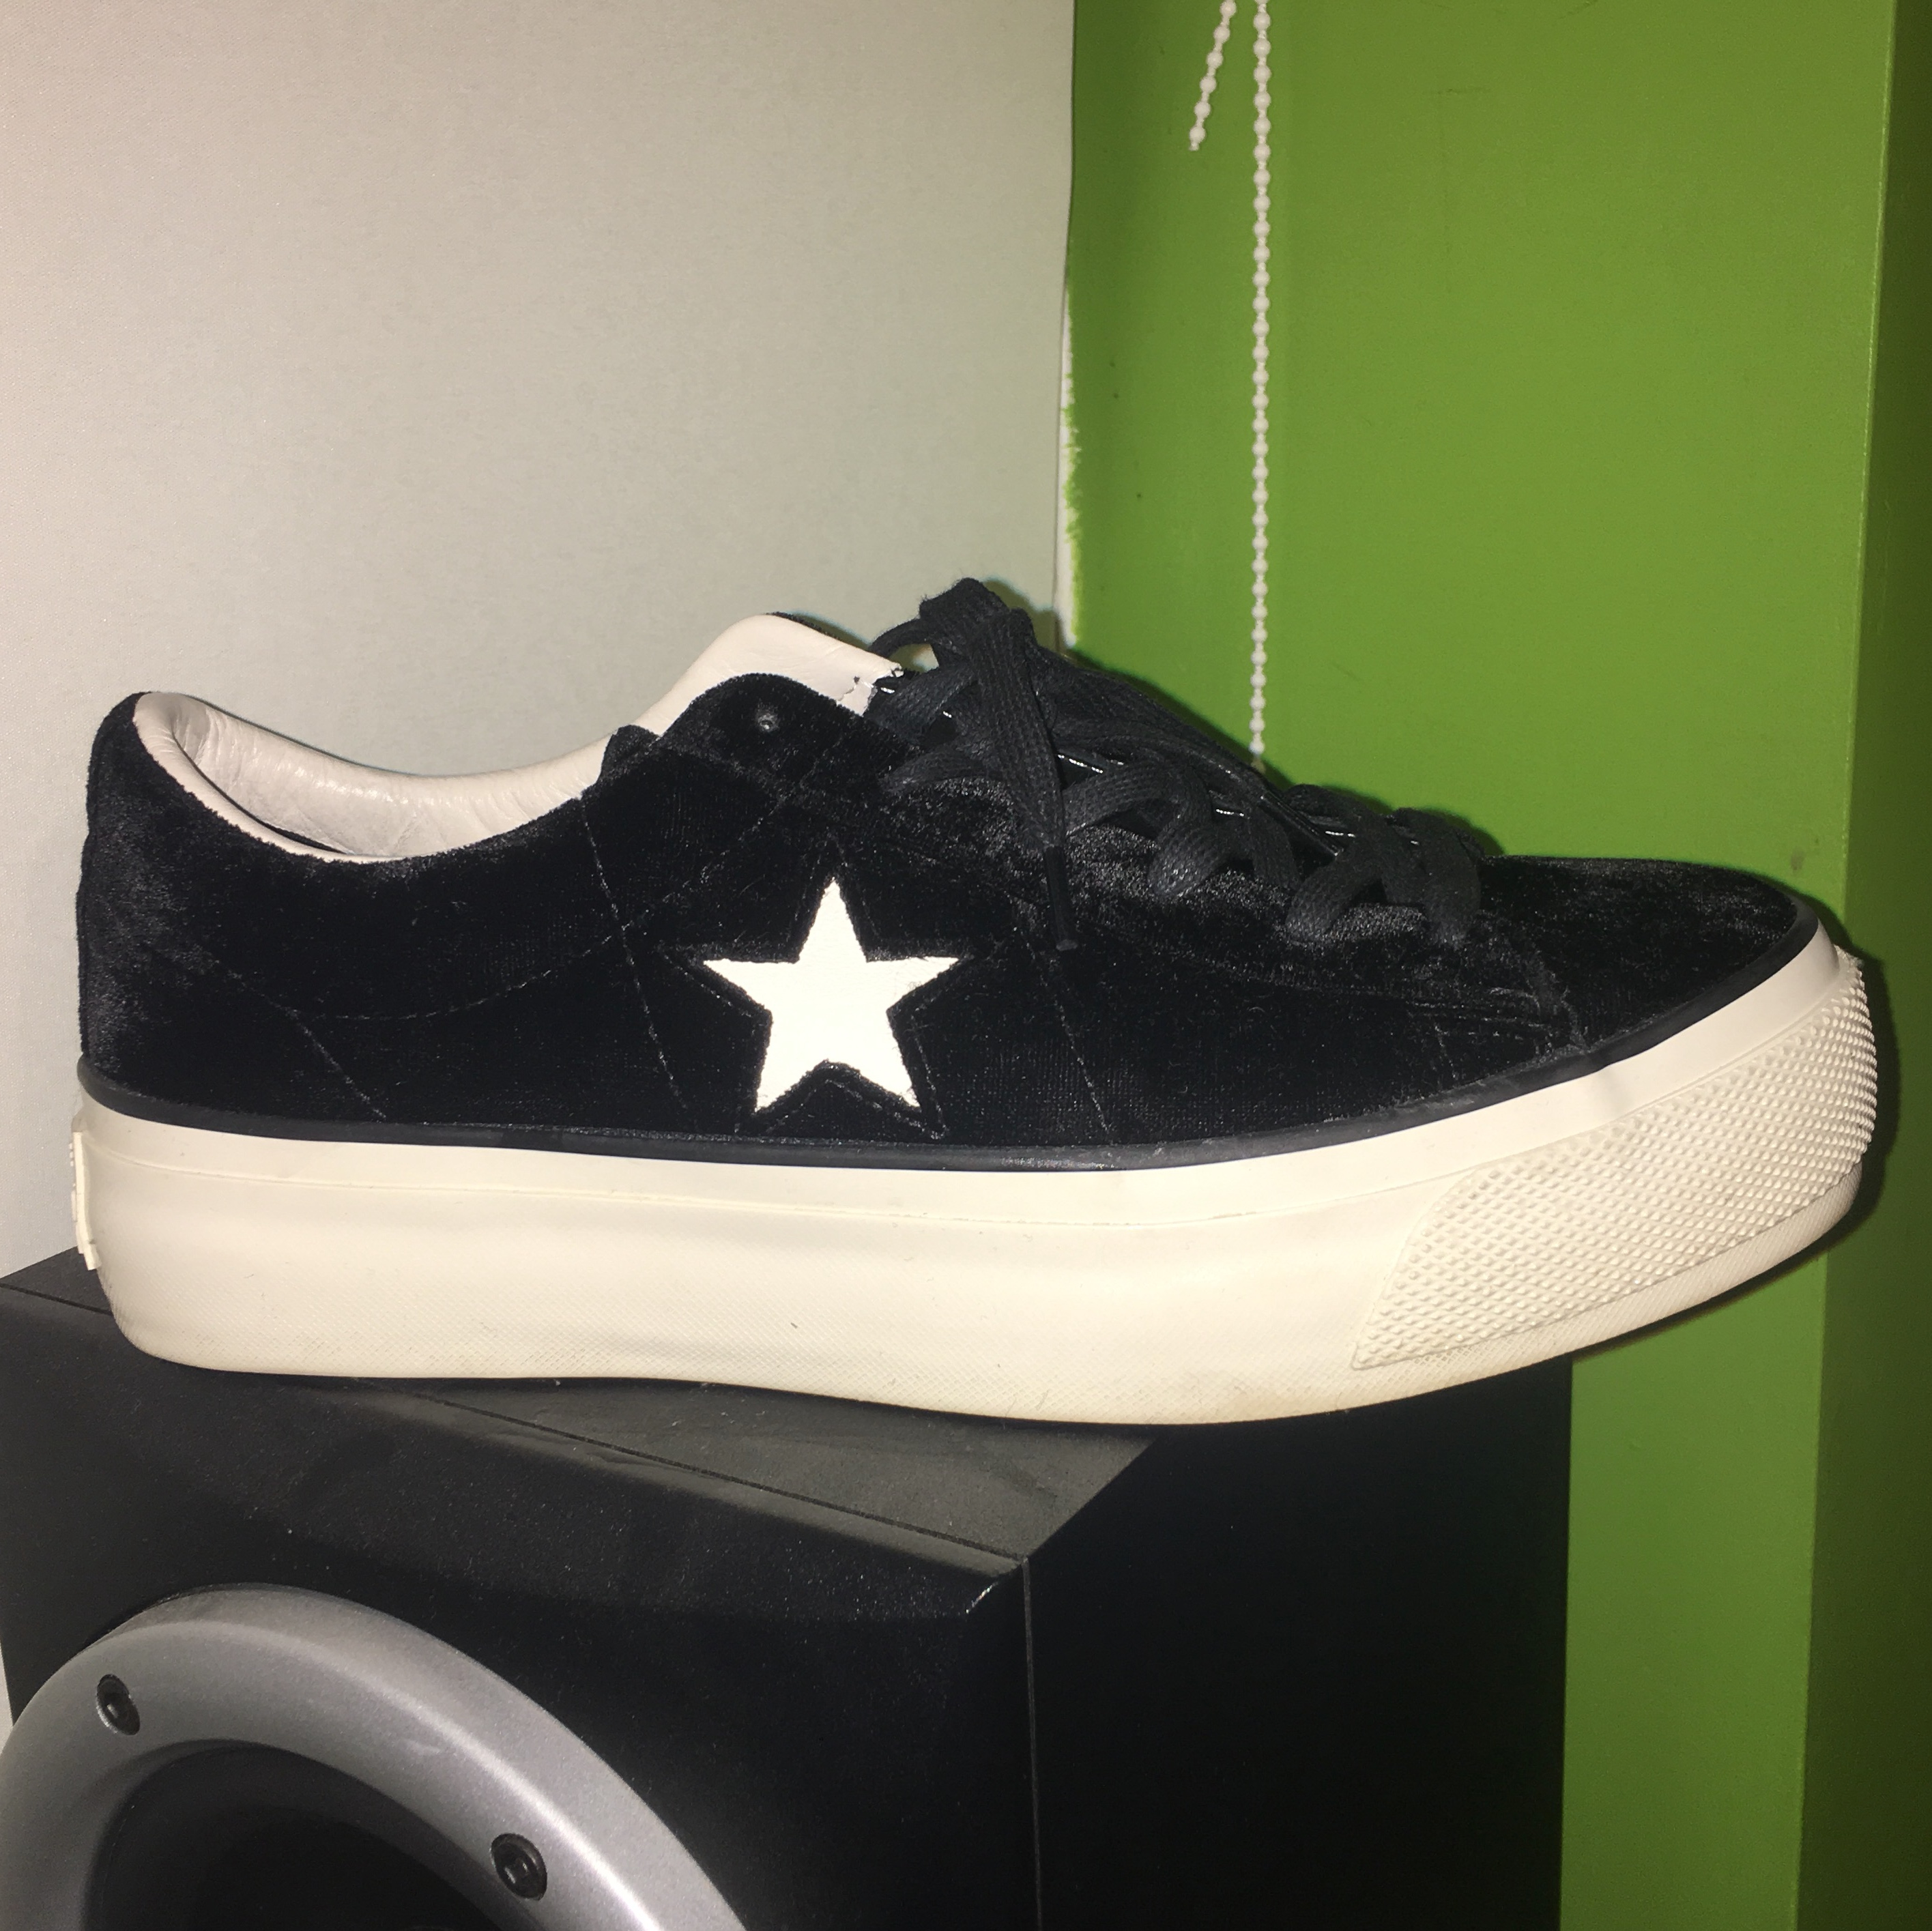 bd1bf7eab54bc1 CONVERSE ONE STAR PLATFORM OX IN BLACK - SIZE 7 WOMENS NEED - Depop